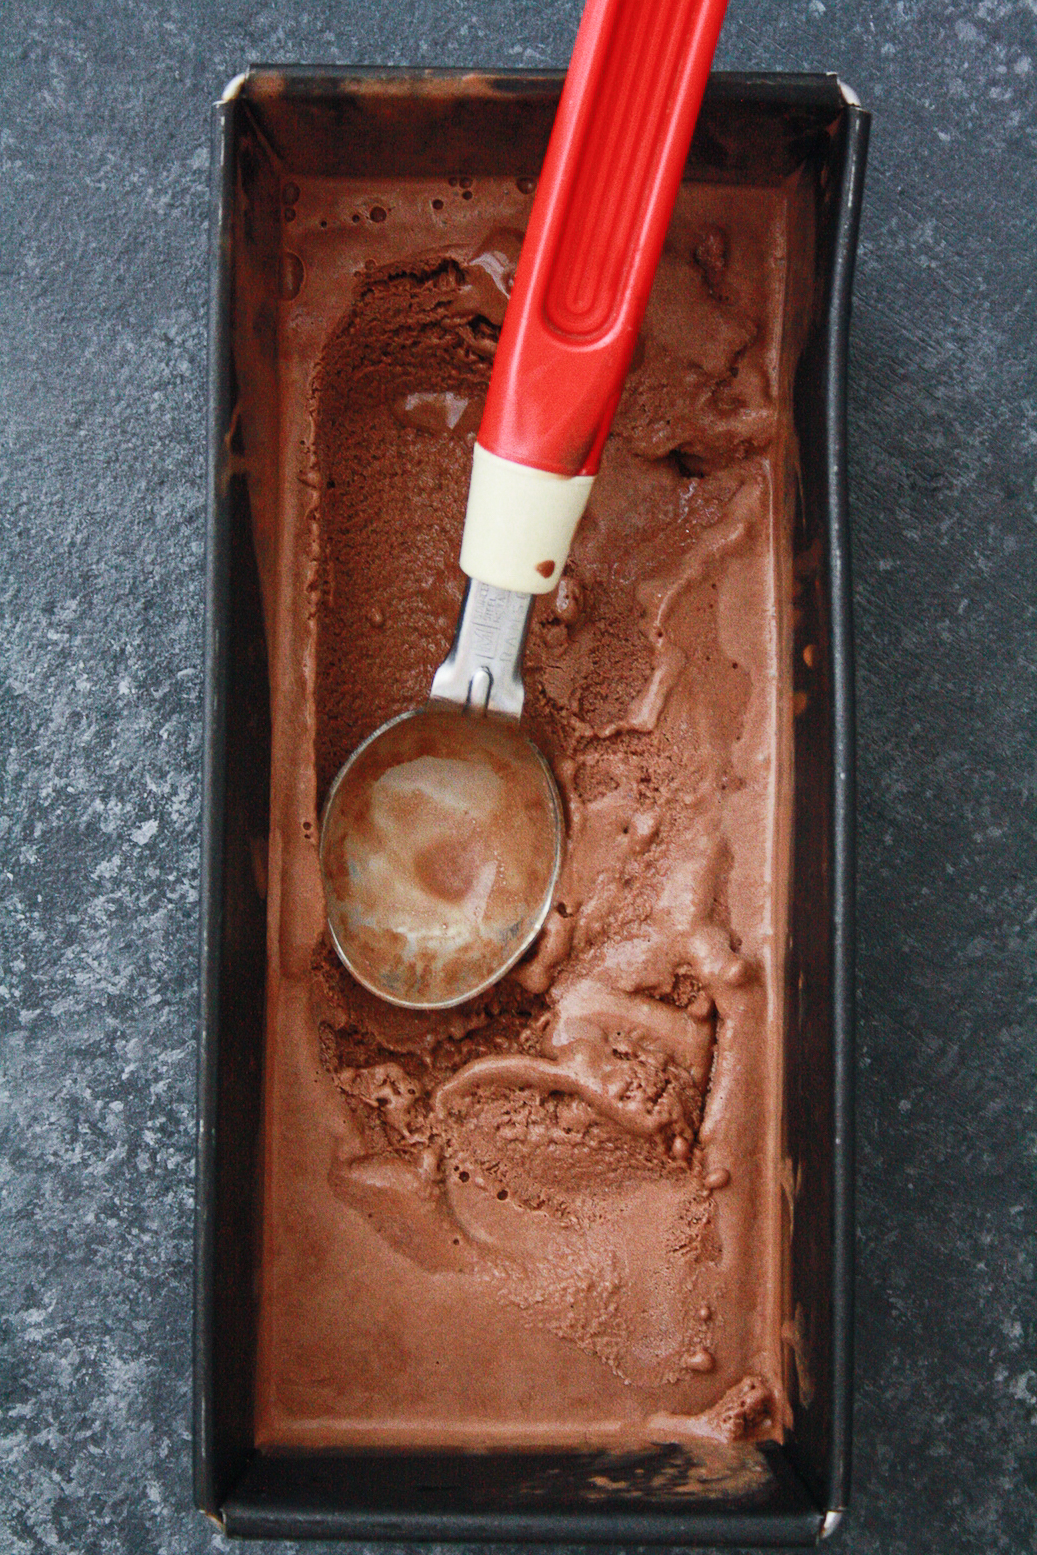 A creamy, chocolatey vegan ice cream made with just three ingredients!